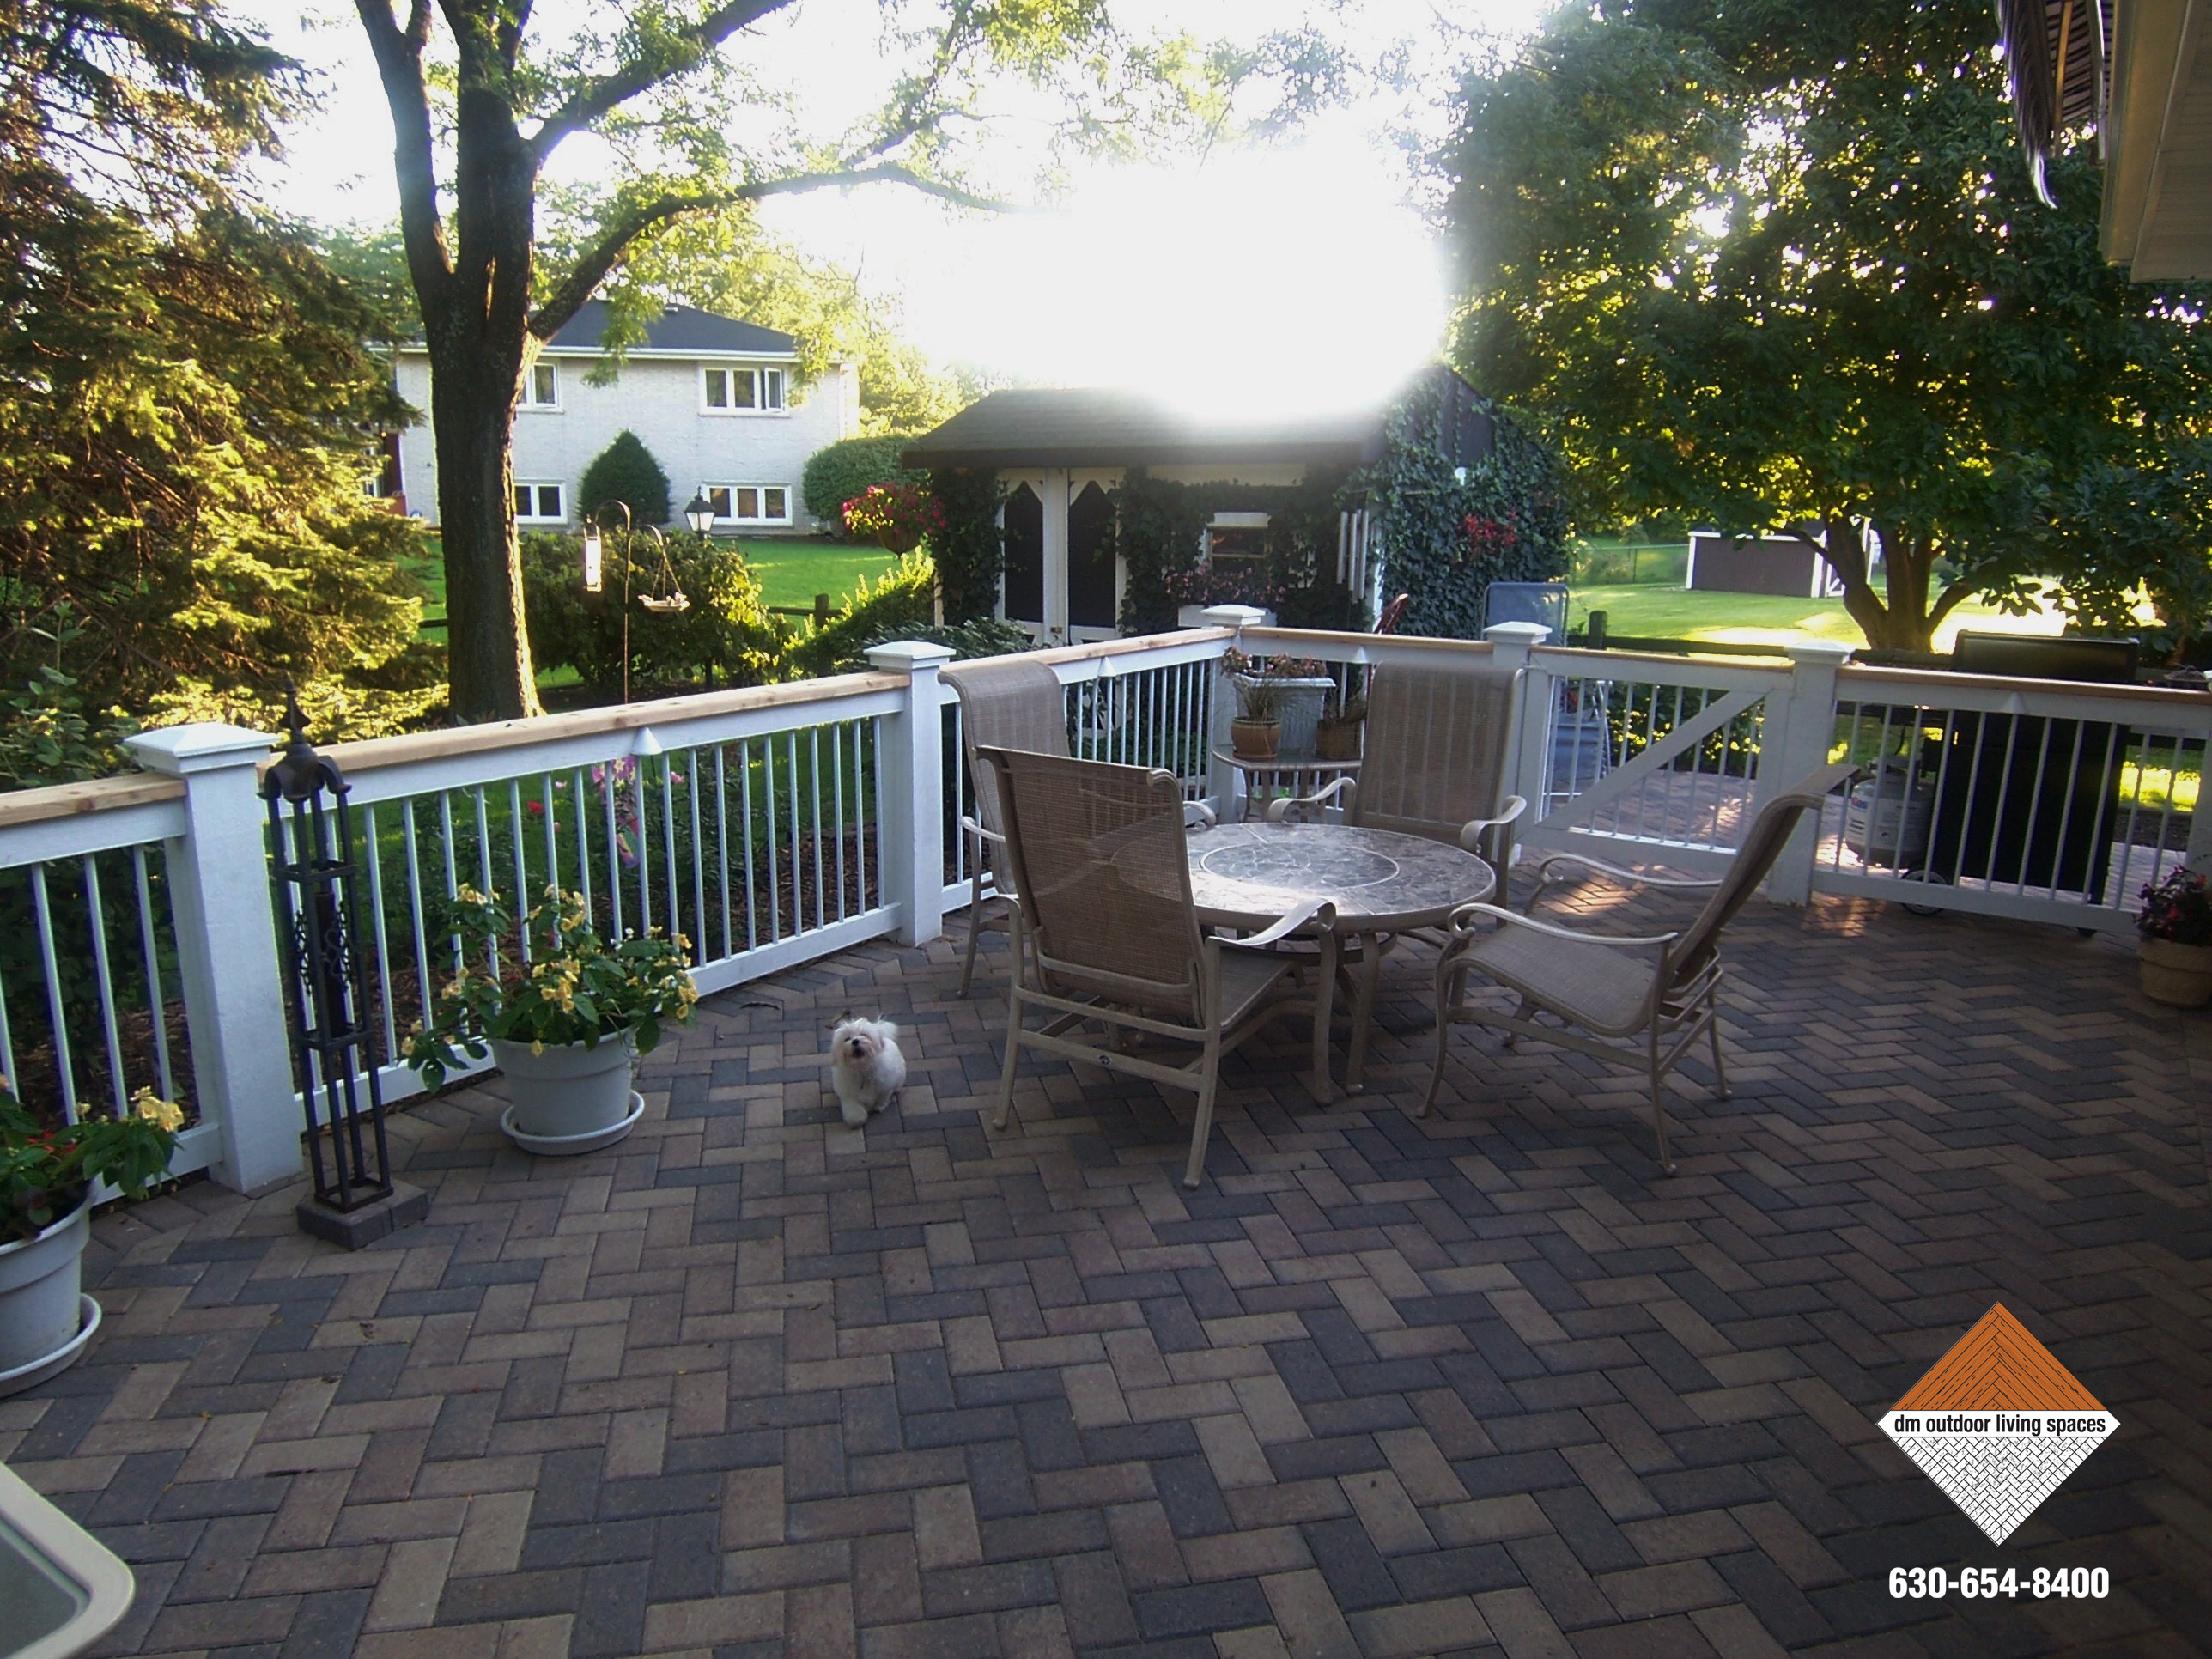 patio home the deck great outdoor umbrella ideas or design on living dinner magazine dinnergarden sunset for